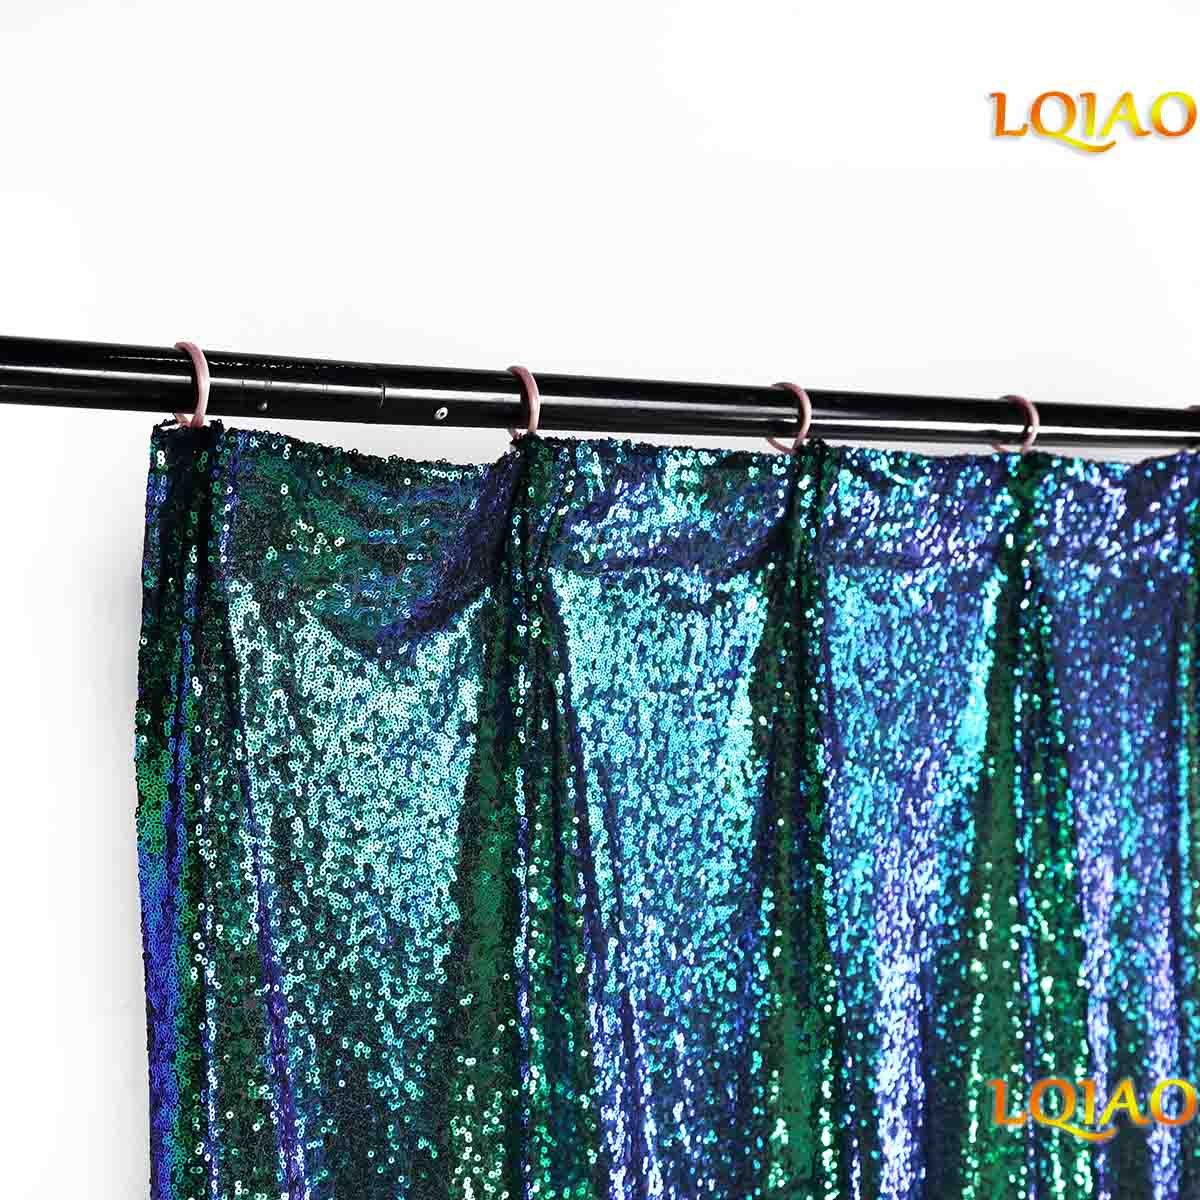 LQIAO W50xH84in Fluorescence Green Sequin Curtain Backdrop Sequin Photo Backdrop Ceremony Background Shimmer Sequin Backdrop Fabric/Curtain For Wedding/Home DIY-one pc, Hook 50x84in(125x220cm)) by LQIAO (Image #2)